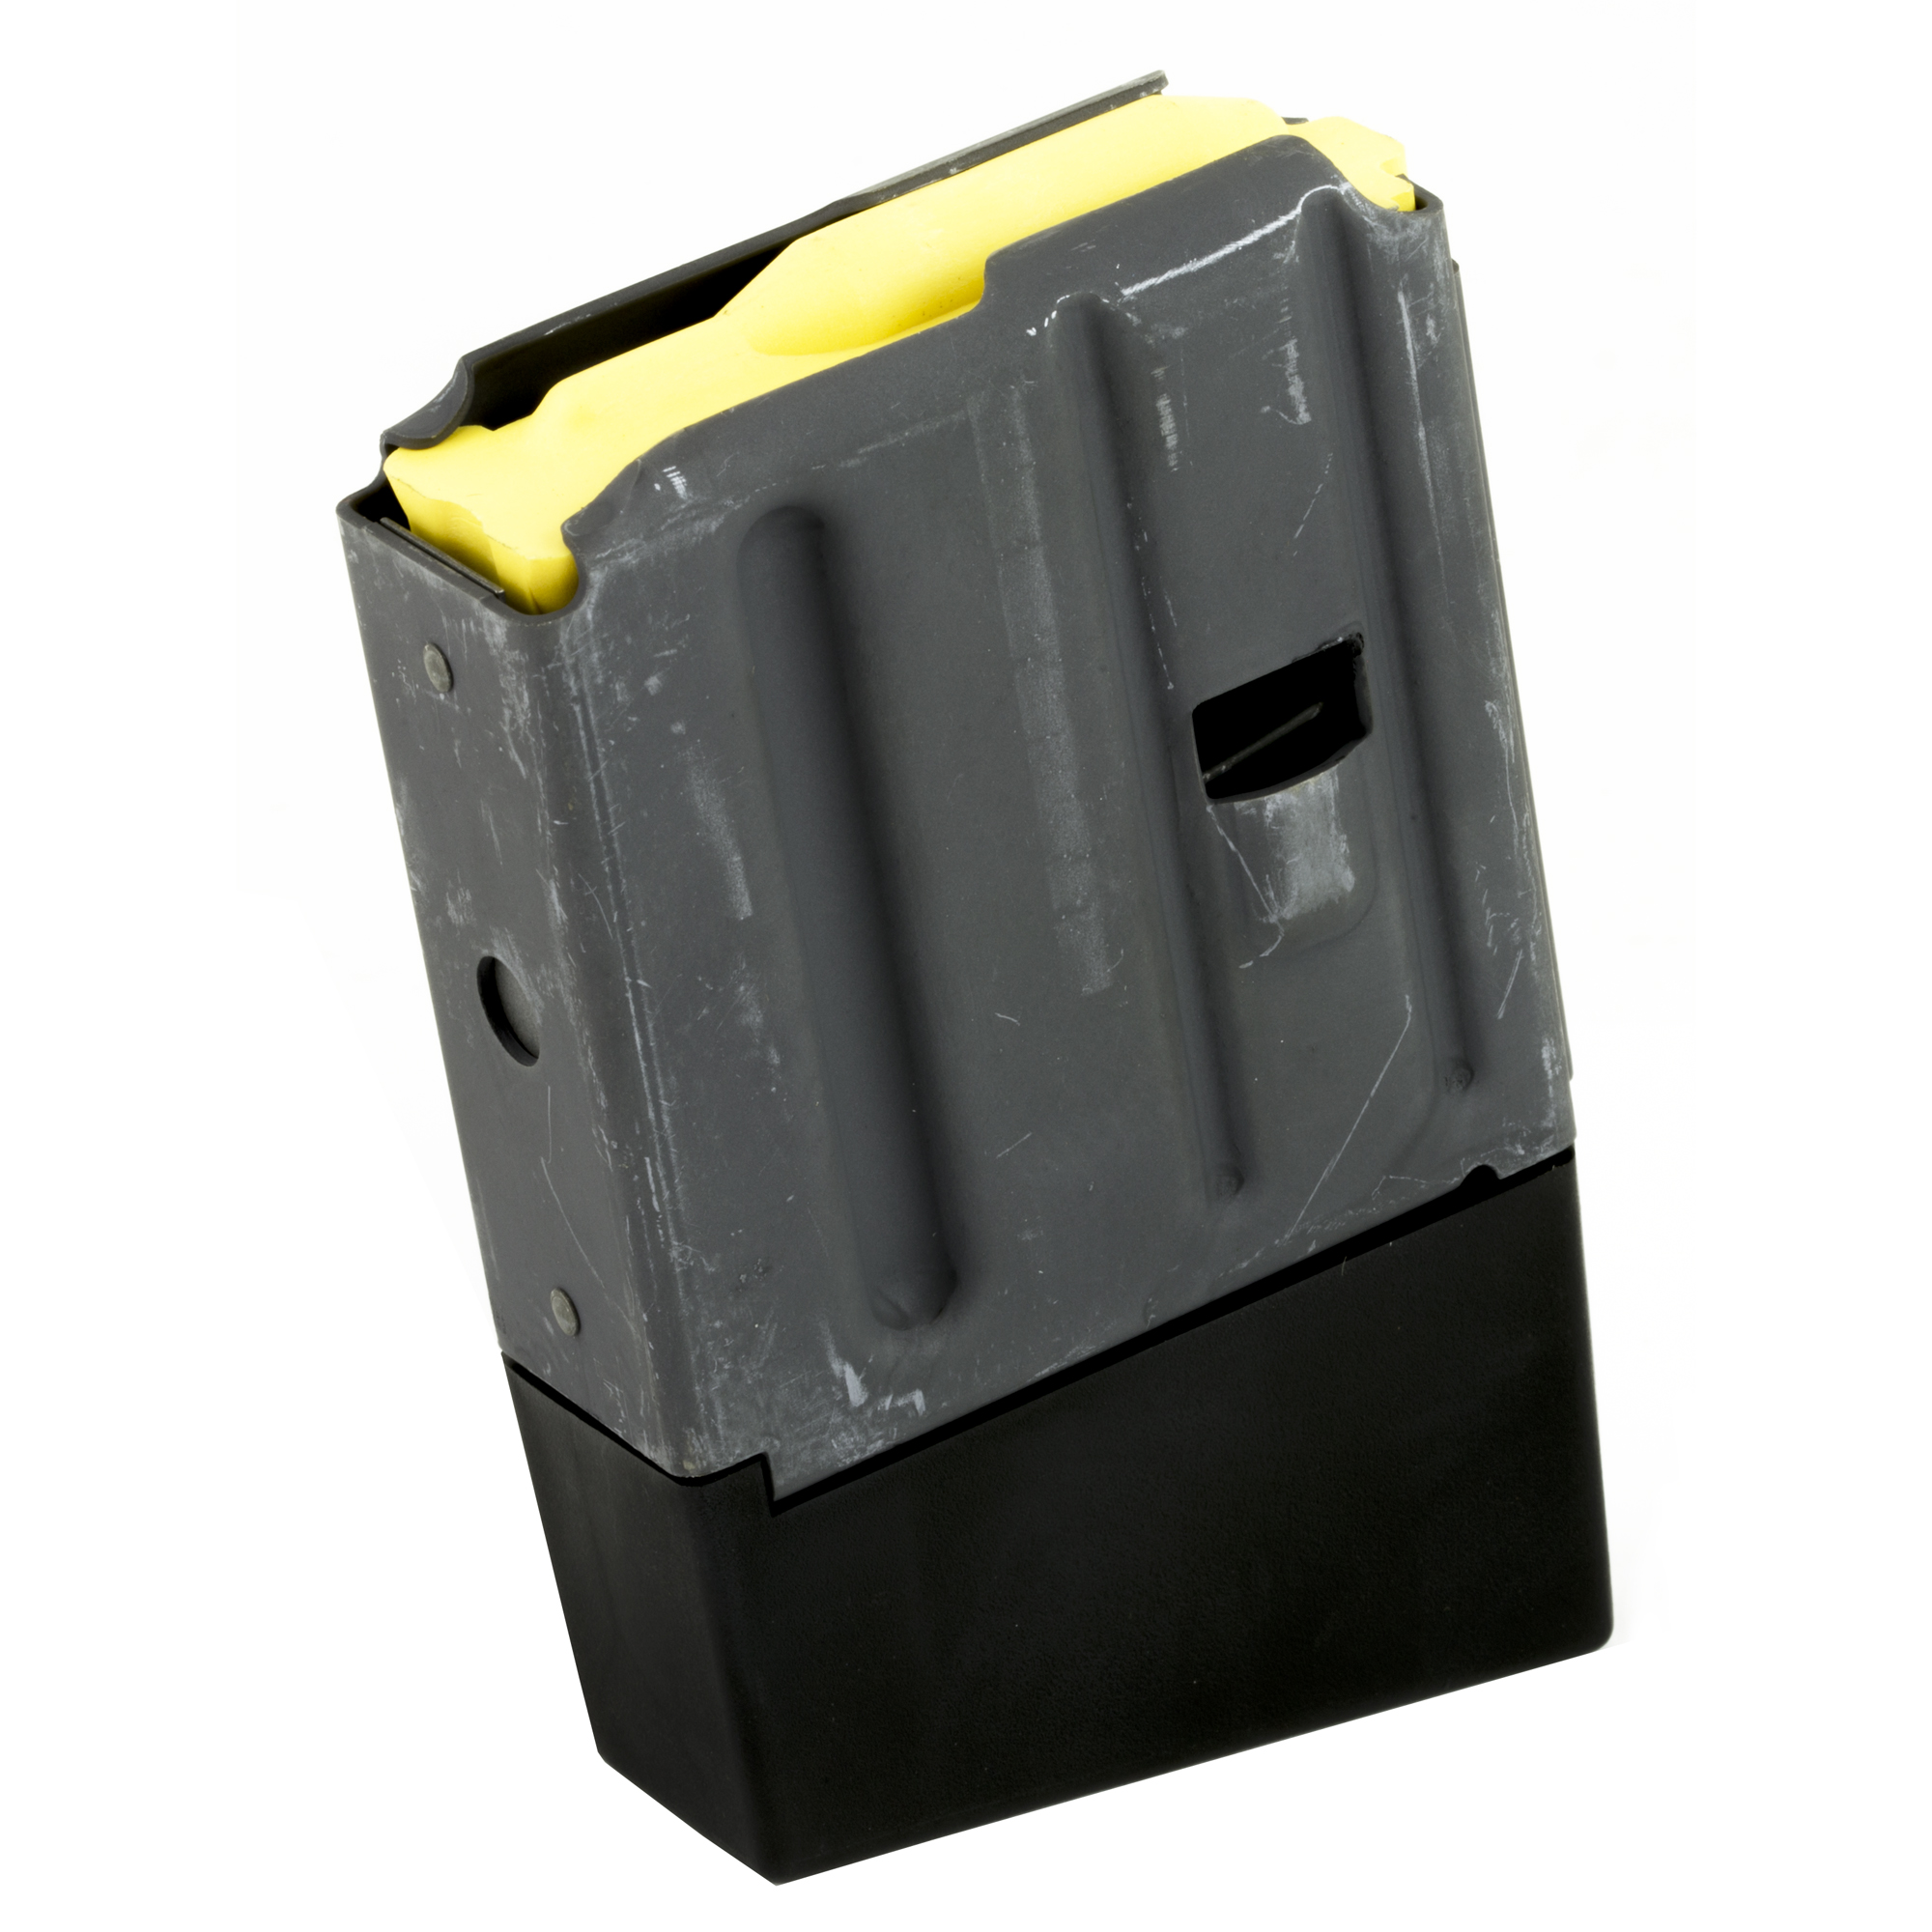 """SureFeed magazines are 100% made in the U.S.A."""" with all-American components. The magazine bodies and floor plates are lightweight aluminum and heat-treated to Mil-Spec requirements for strength and durability. SureFeed magazines allow for speed"""" accuracy and precision for the expert marksmen or law enforcement professional who cares about true quality."""